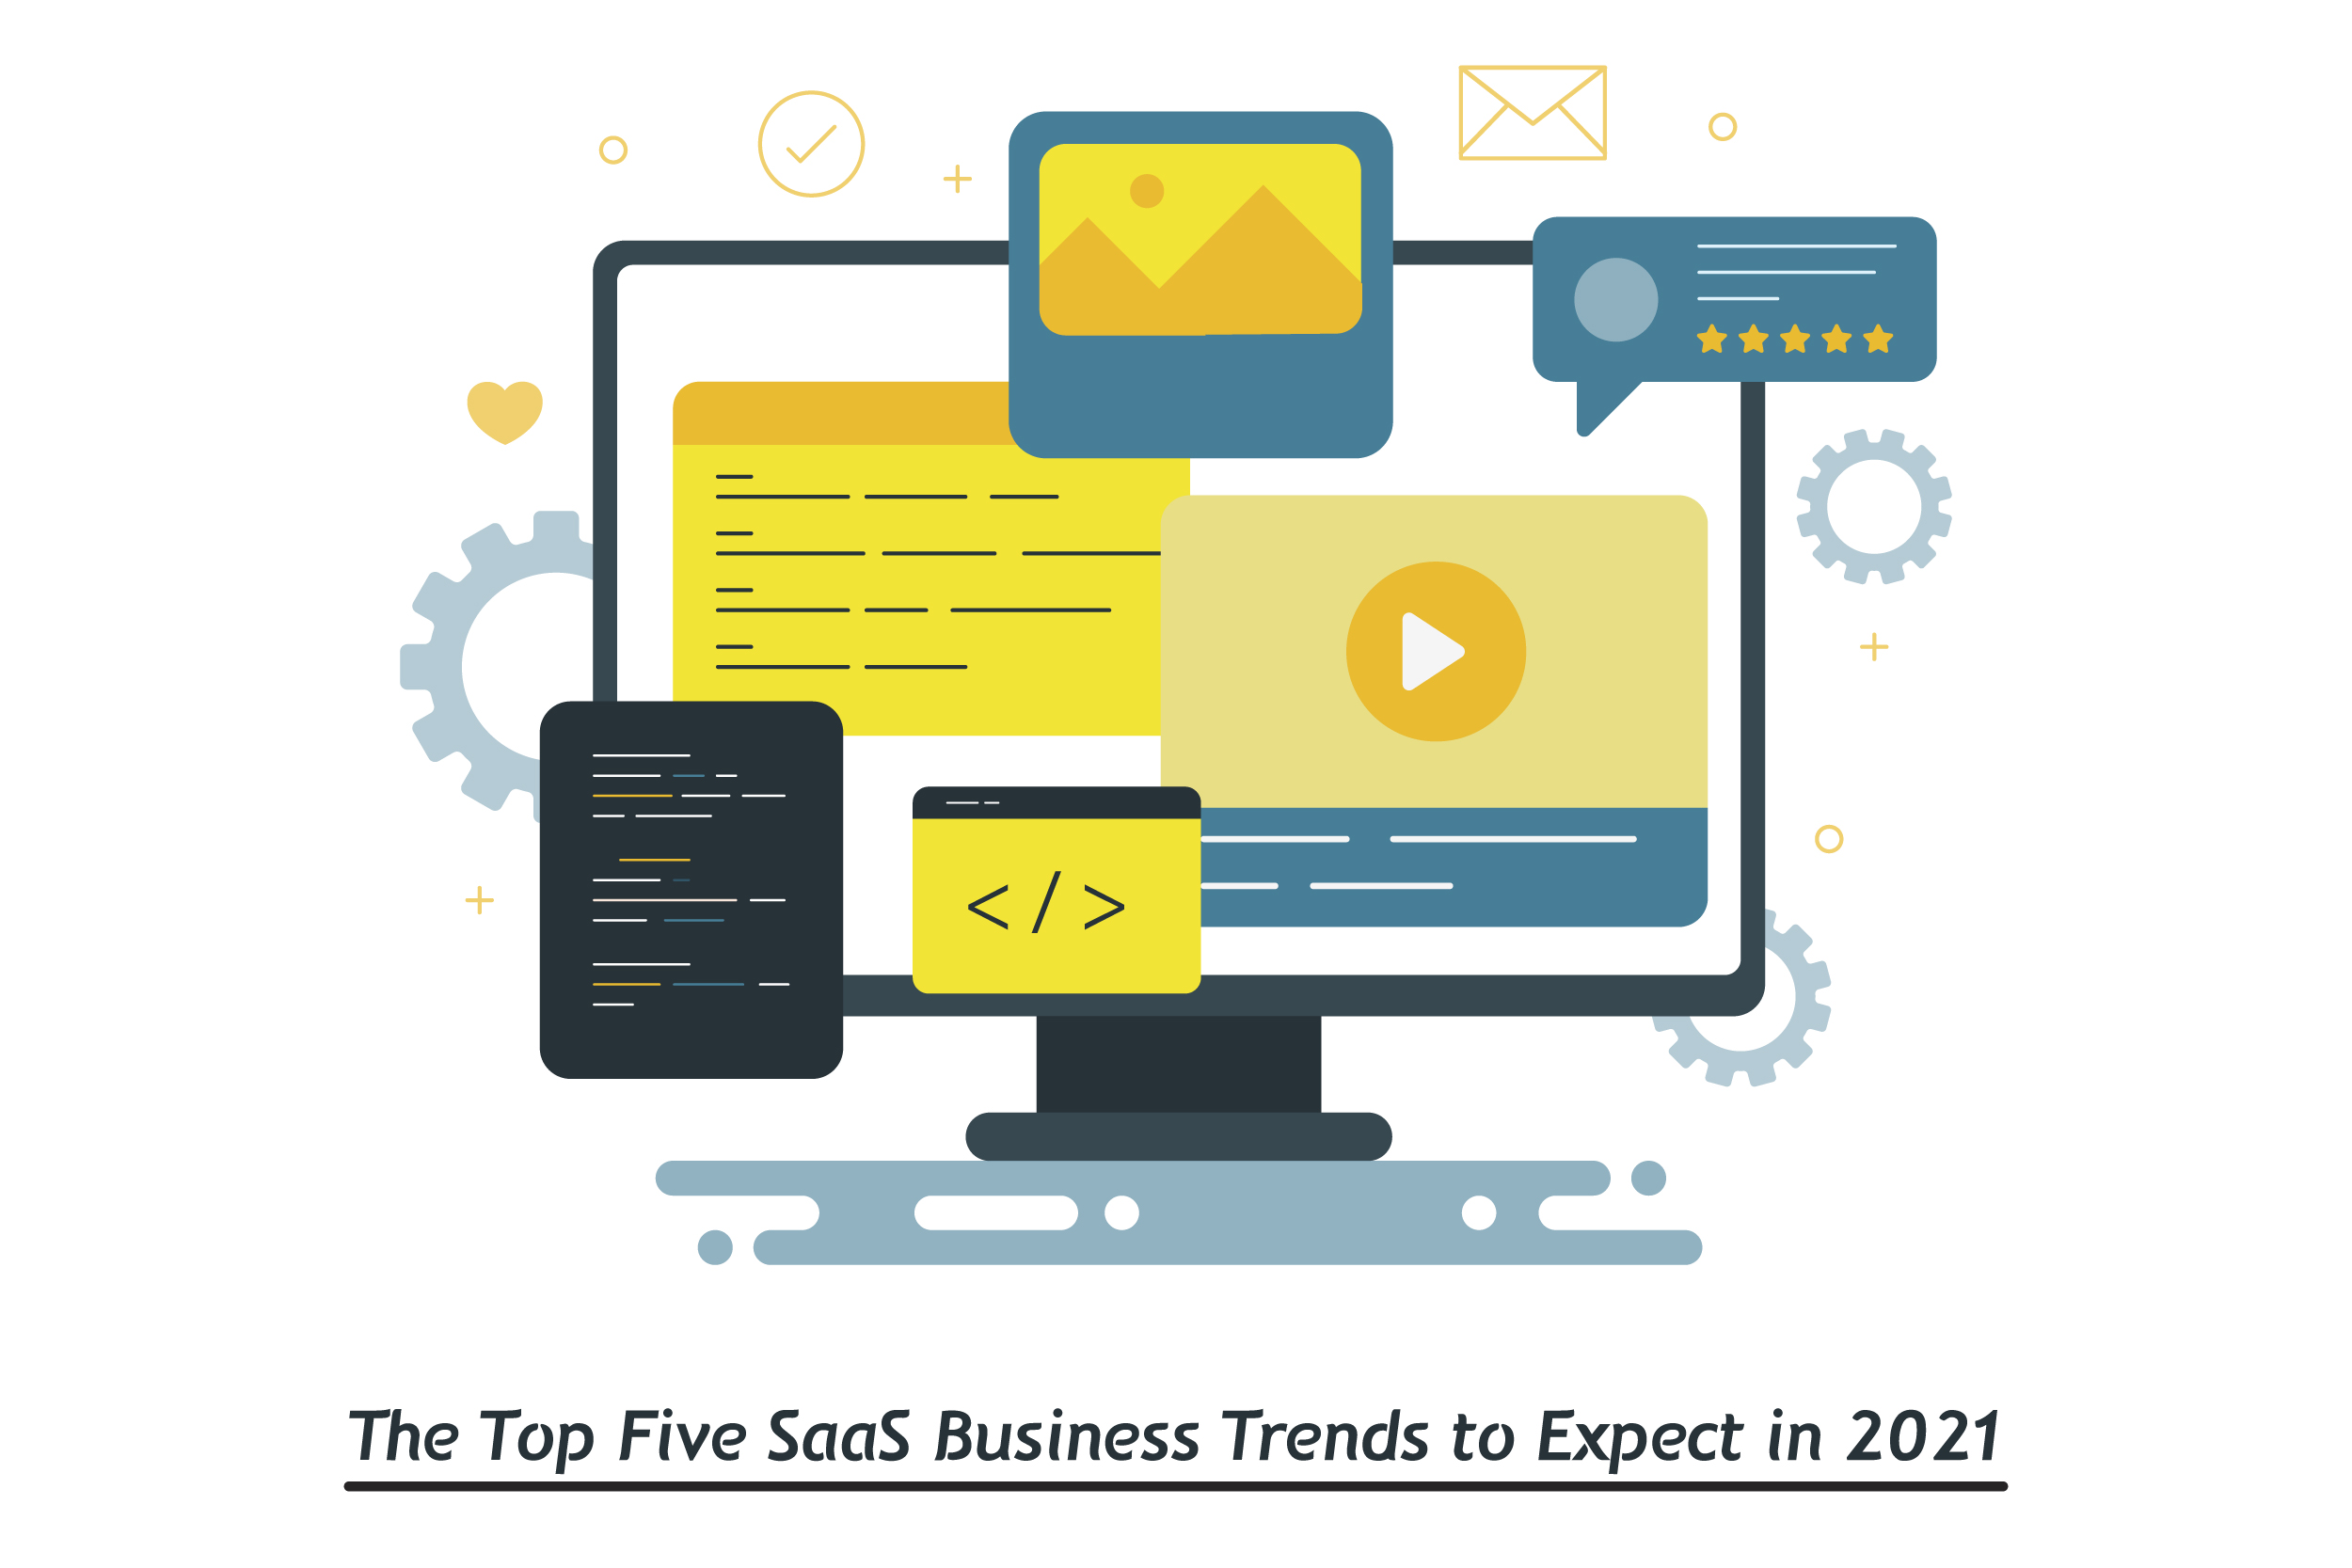 The Top Five SaaS Business Trends to Expect in 2021